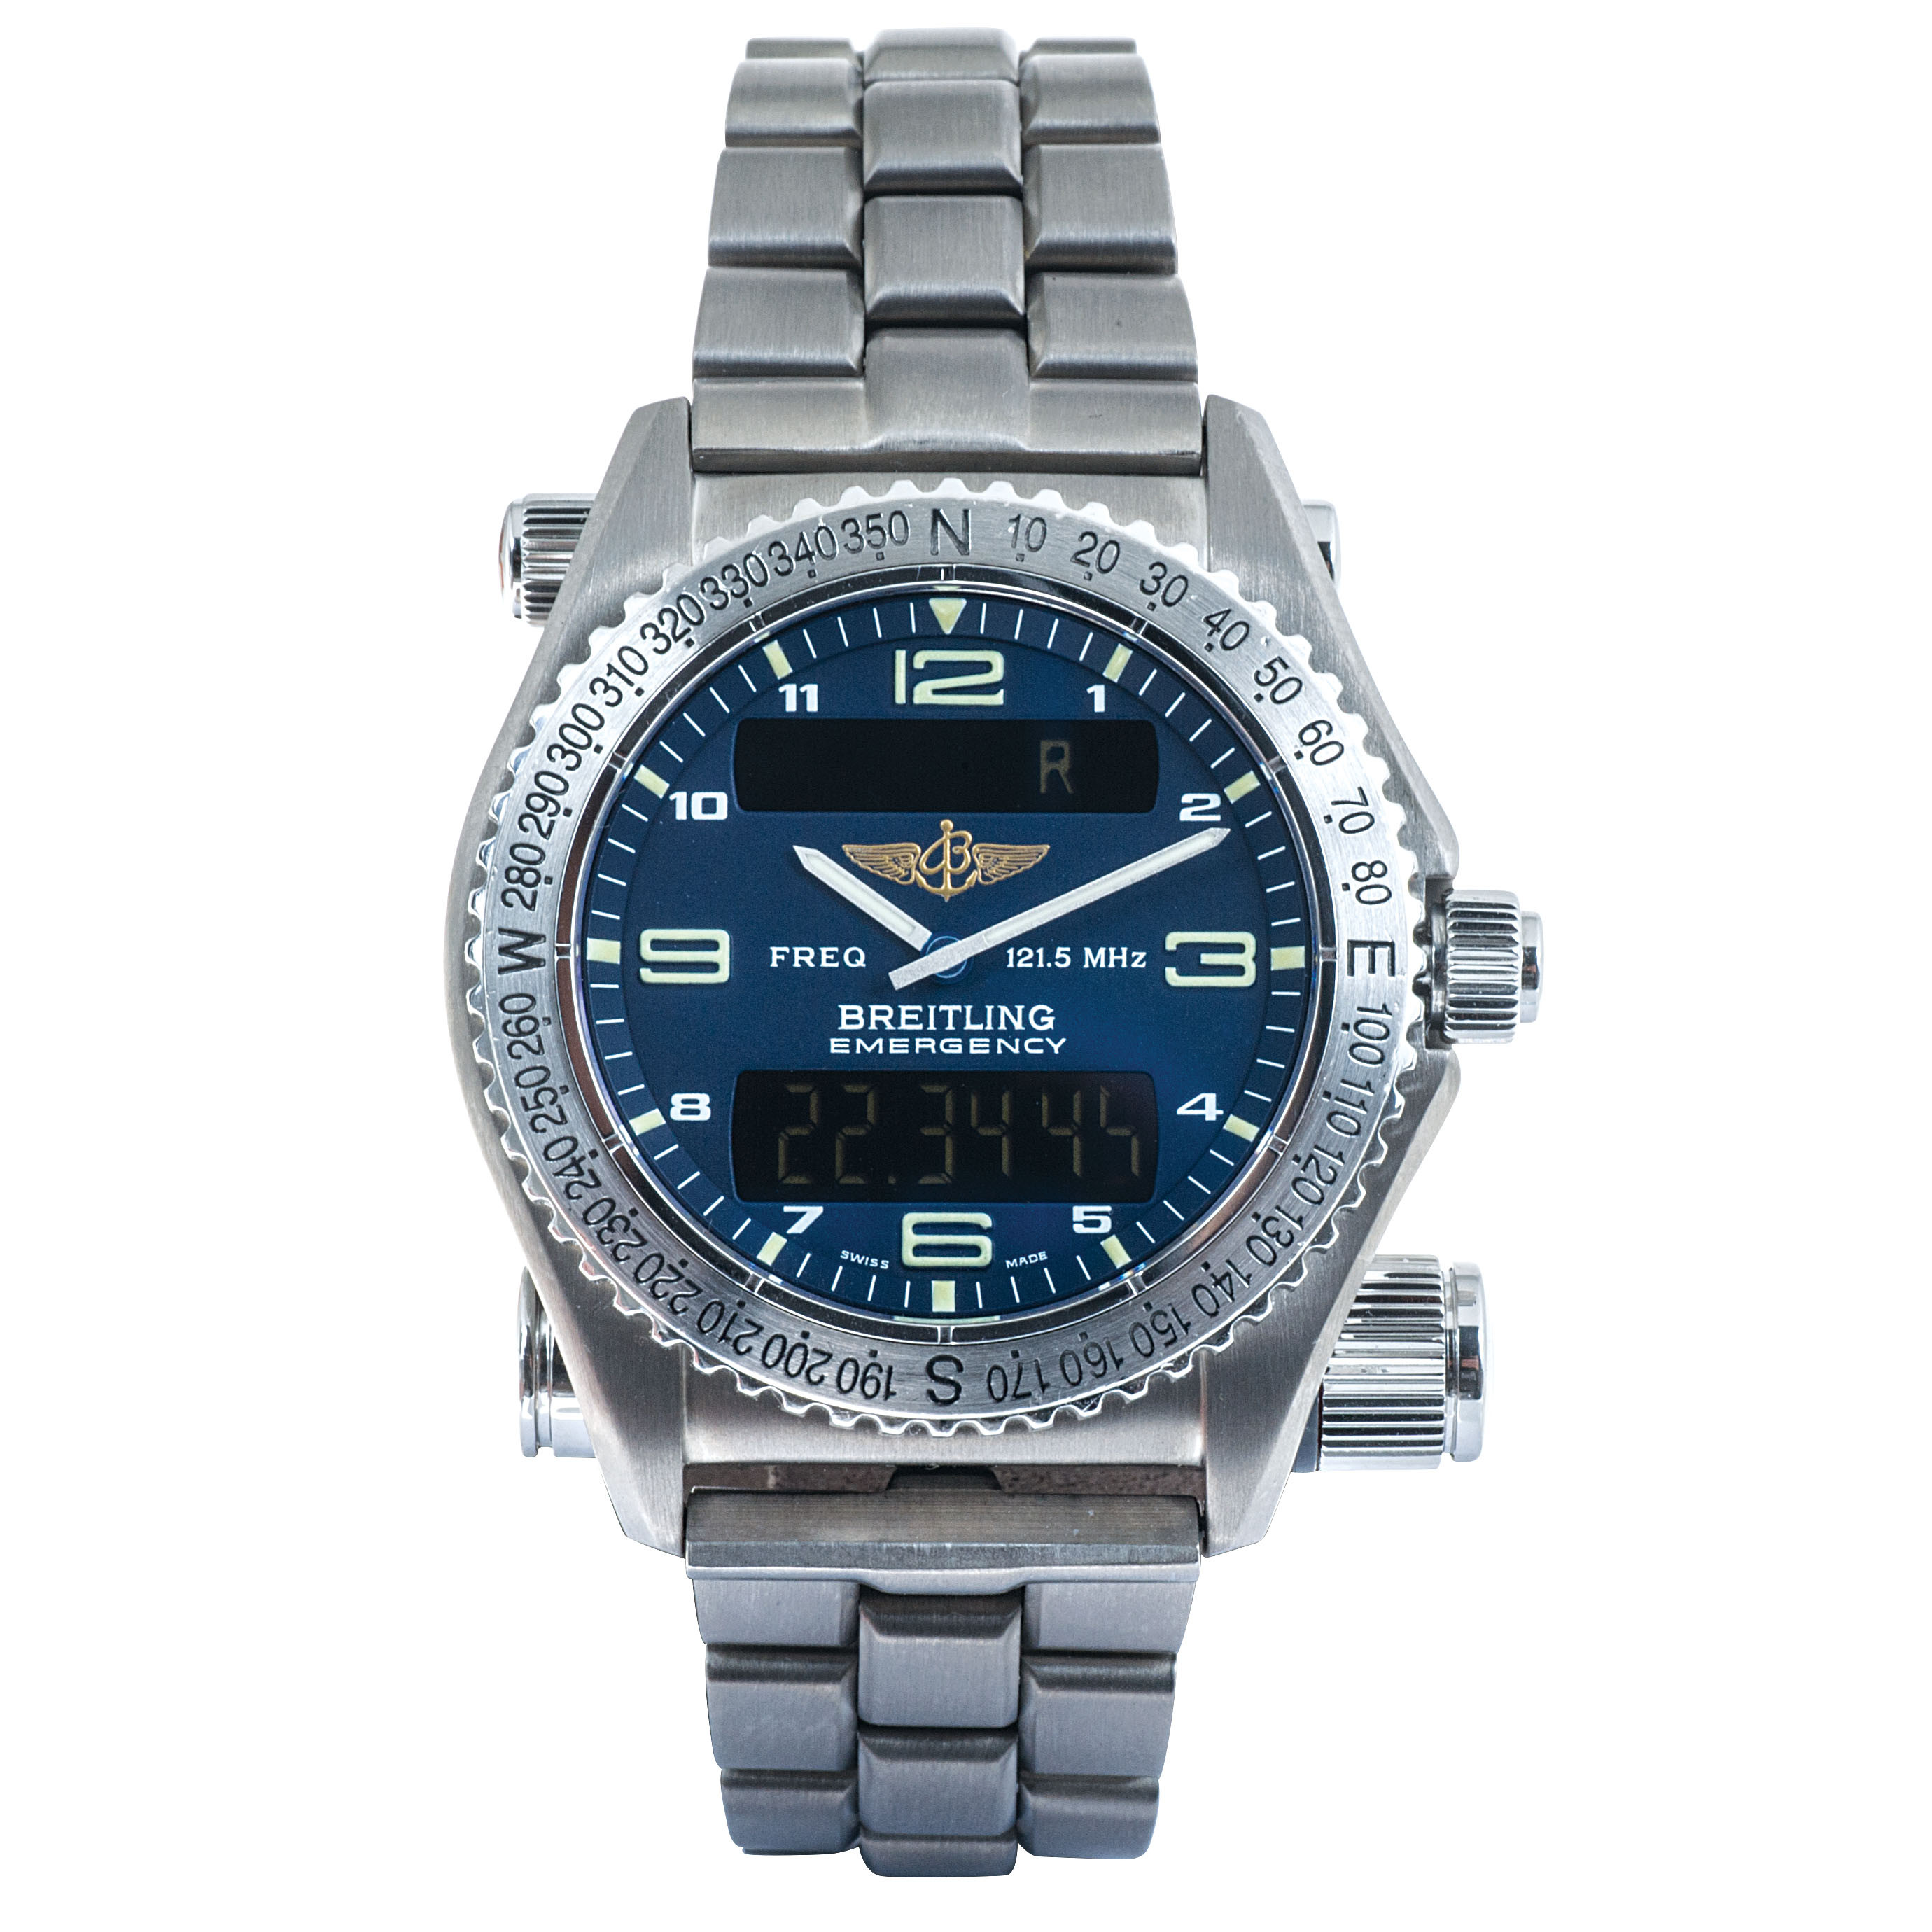 Preowned Breitling Emergency